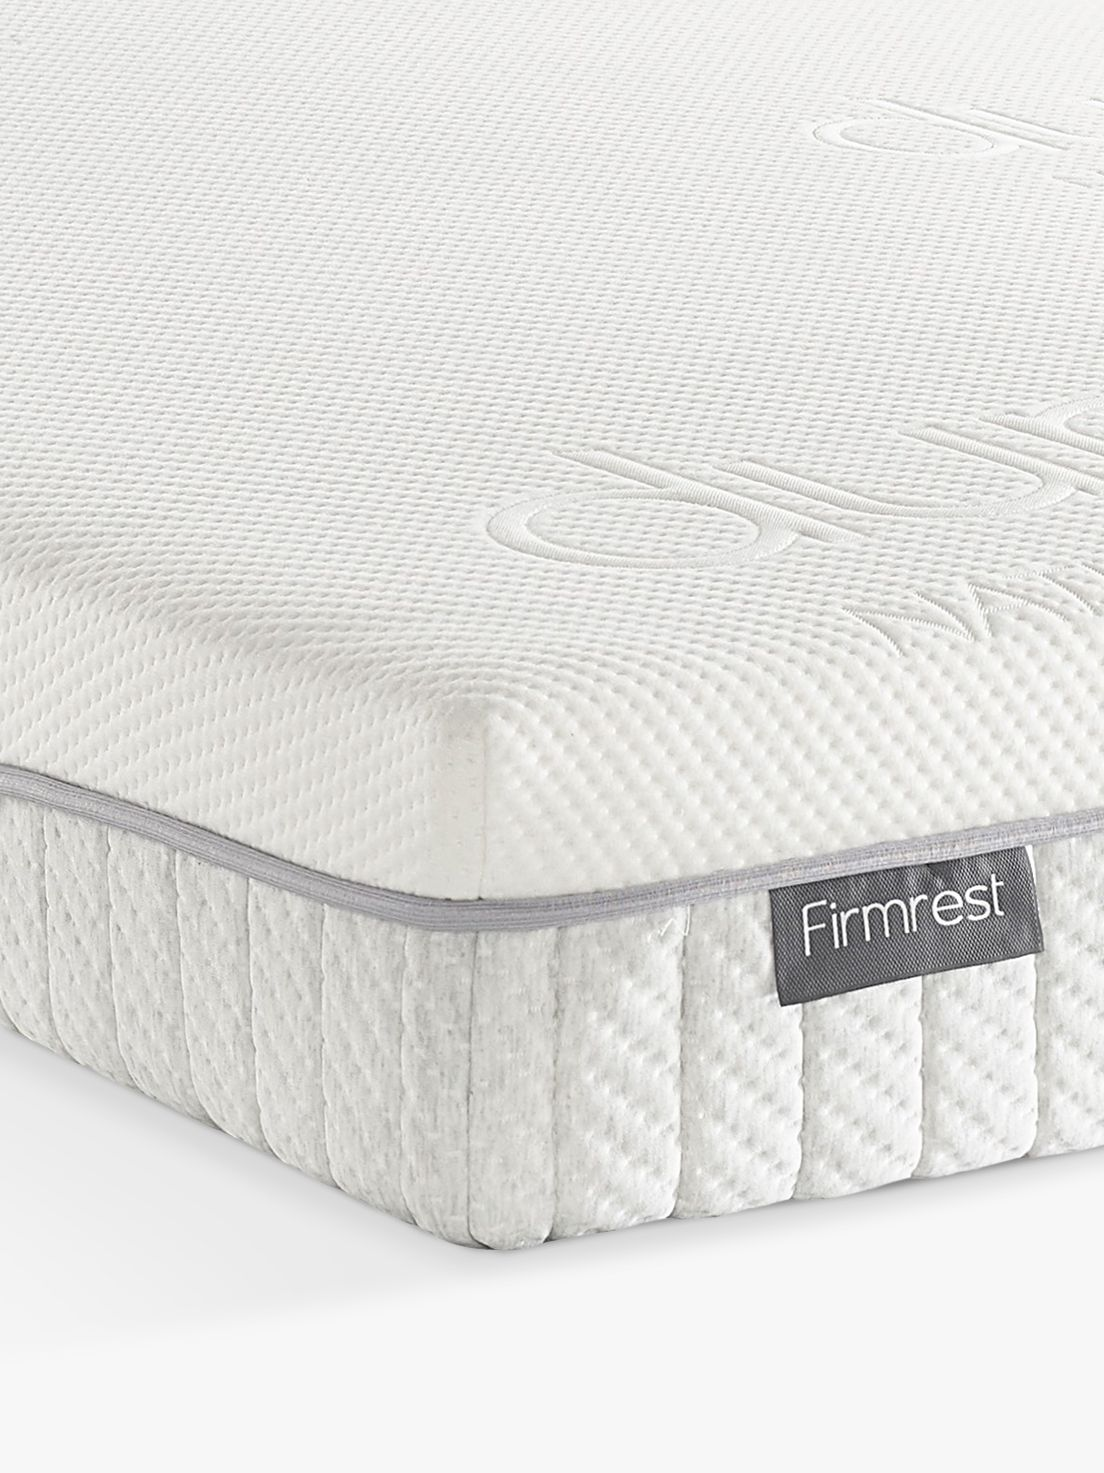 Best Labor Day Mattress Sales Second Summary. Our Recommendation: Amerisleep AS2 is the best sale that we found on mattresses for this Labor Day holiday. It is priced at $1, for a queen sized mattress. They also offer a whopping 20 year warranty and a day trial period.